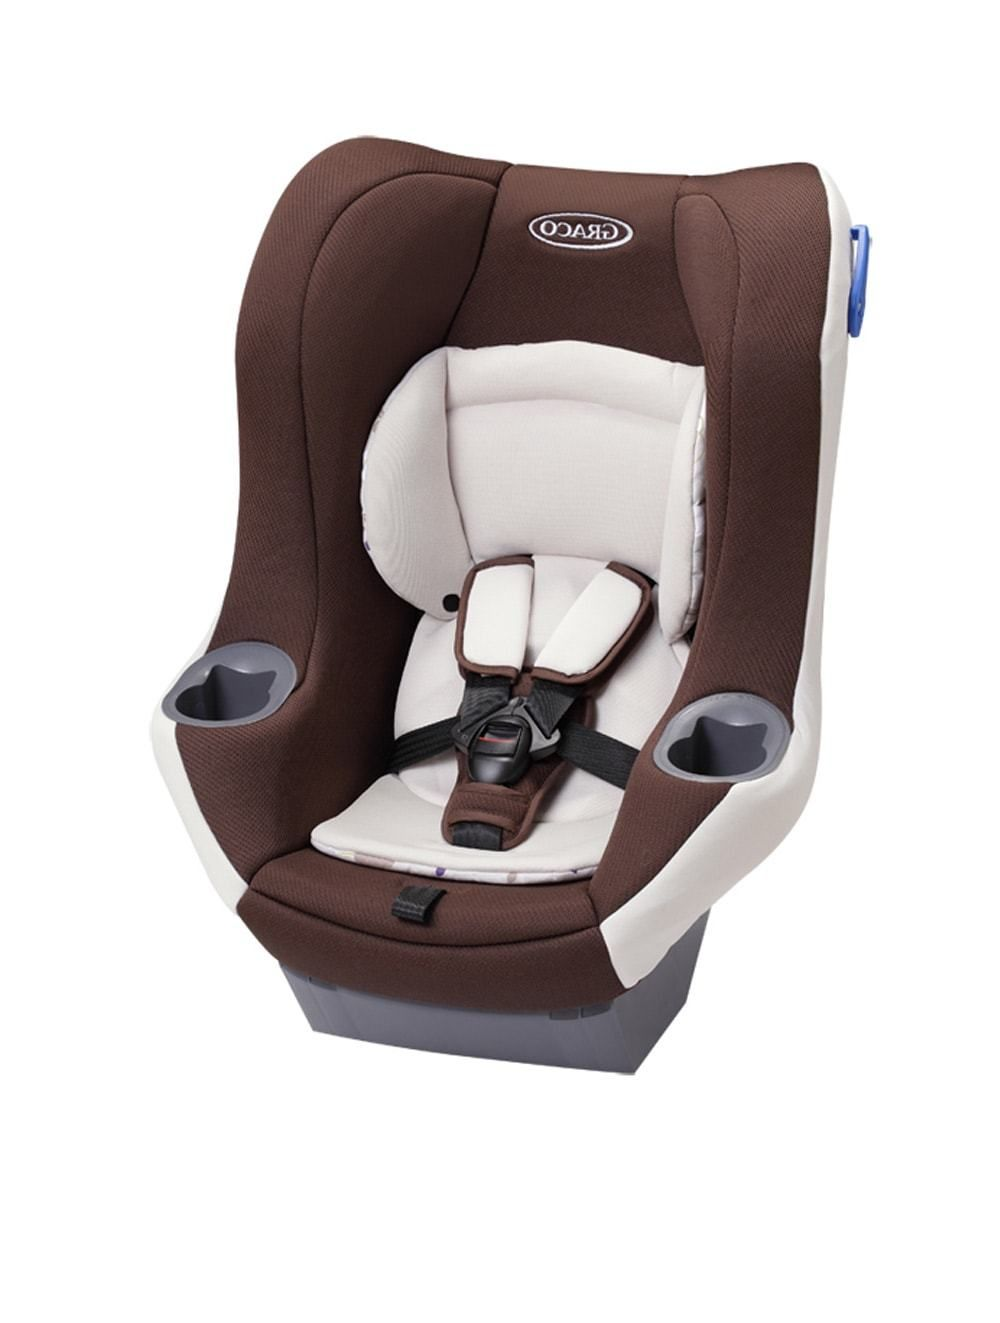 Gracos Contender 65 Convertible Car Seat In Piedmont Holds A Rear Facing Infant From 5 40 Lbs